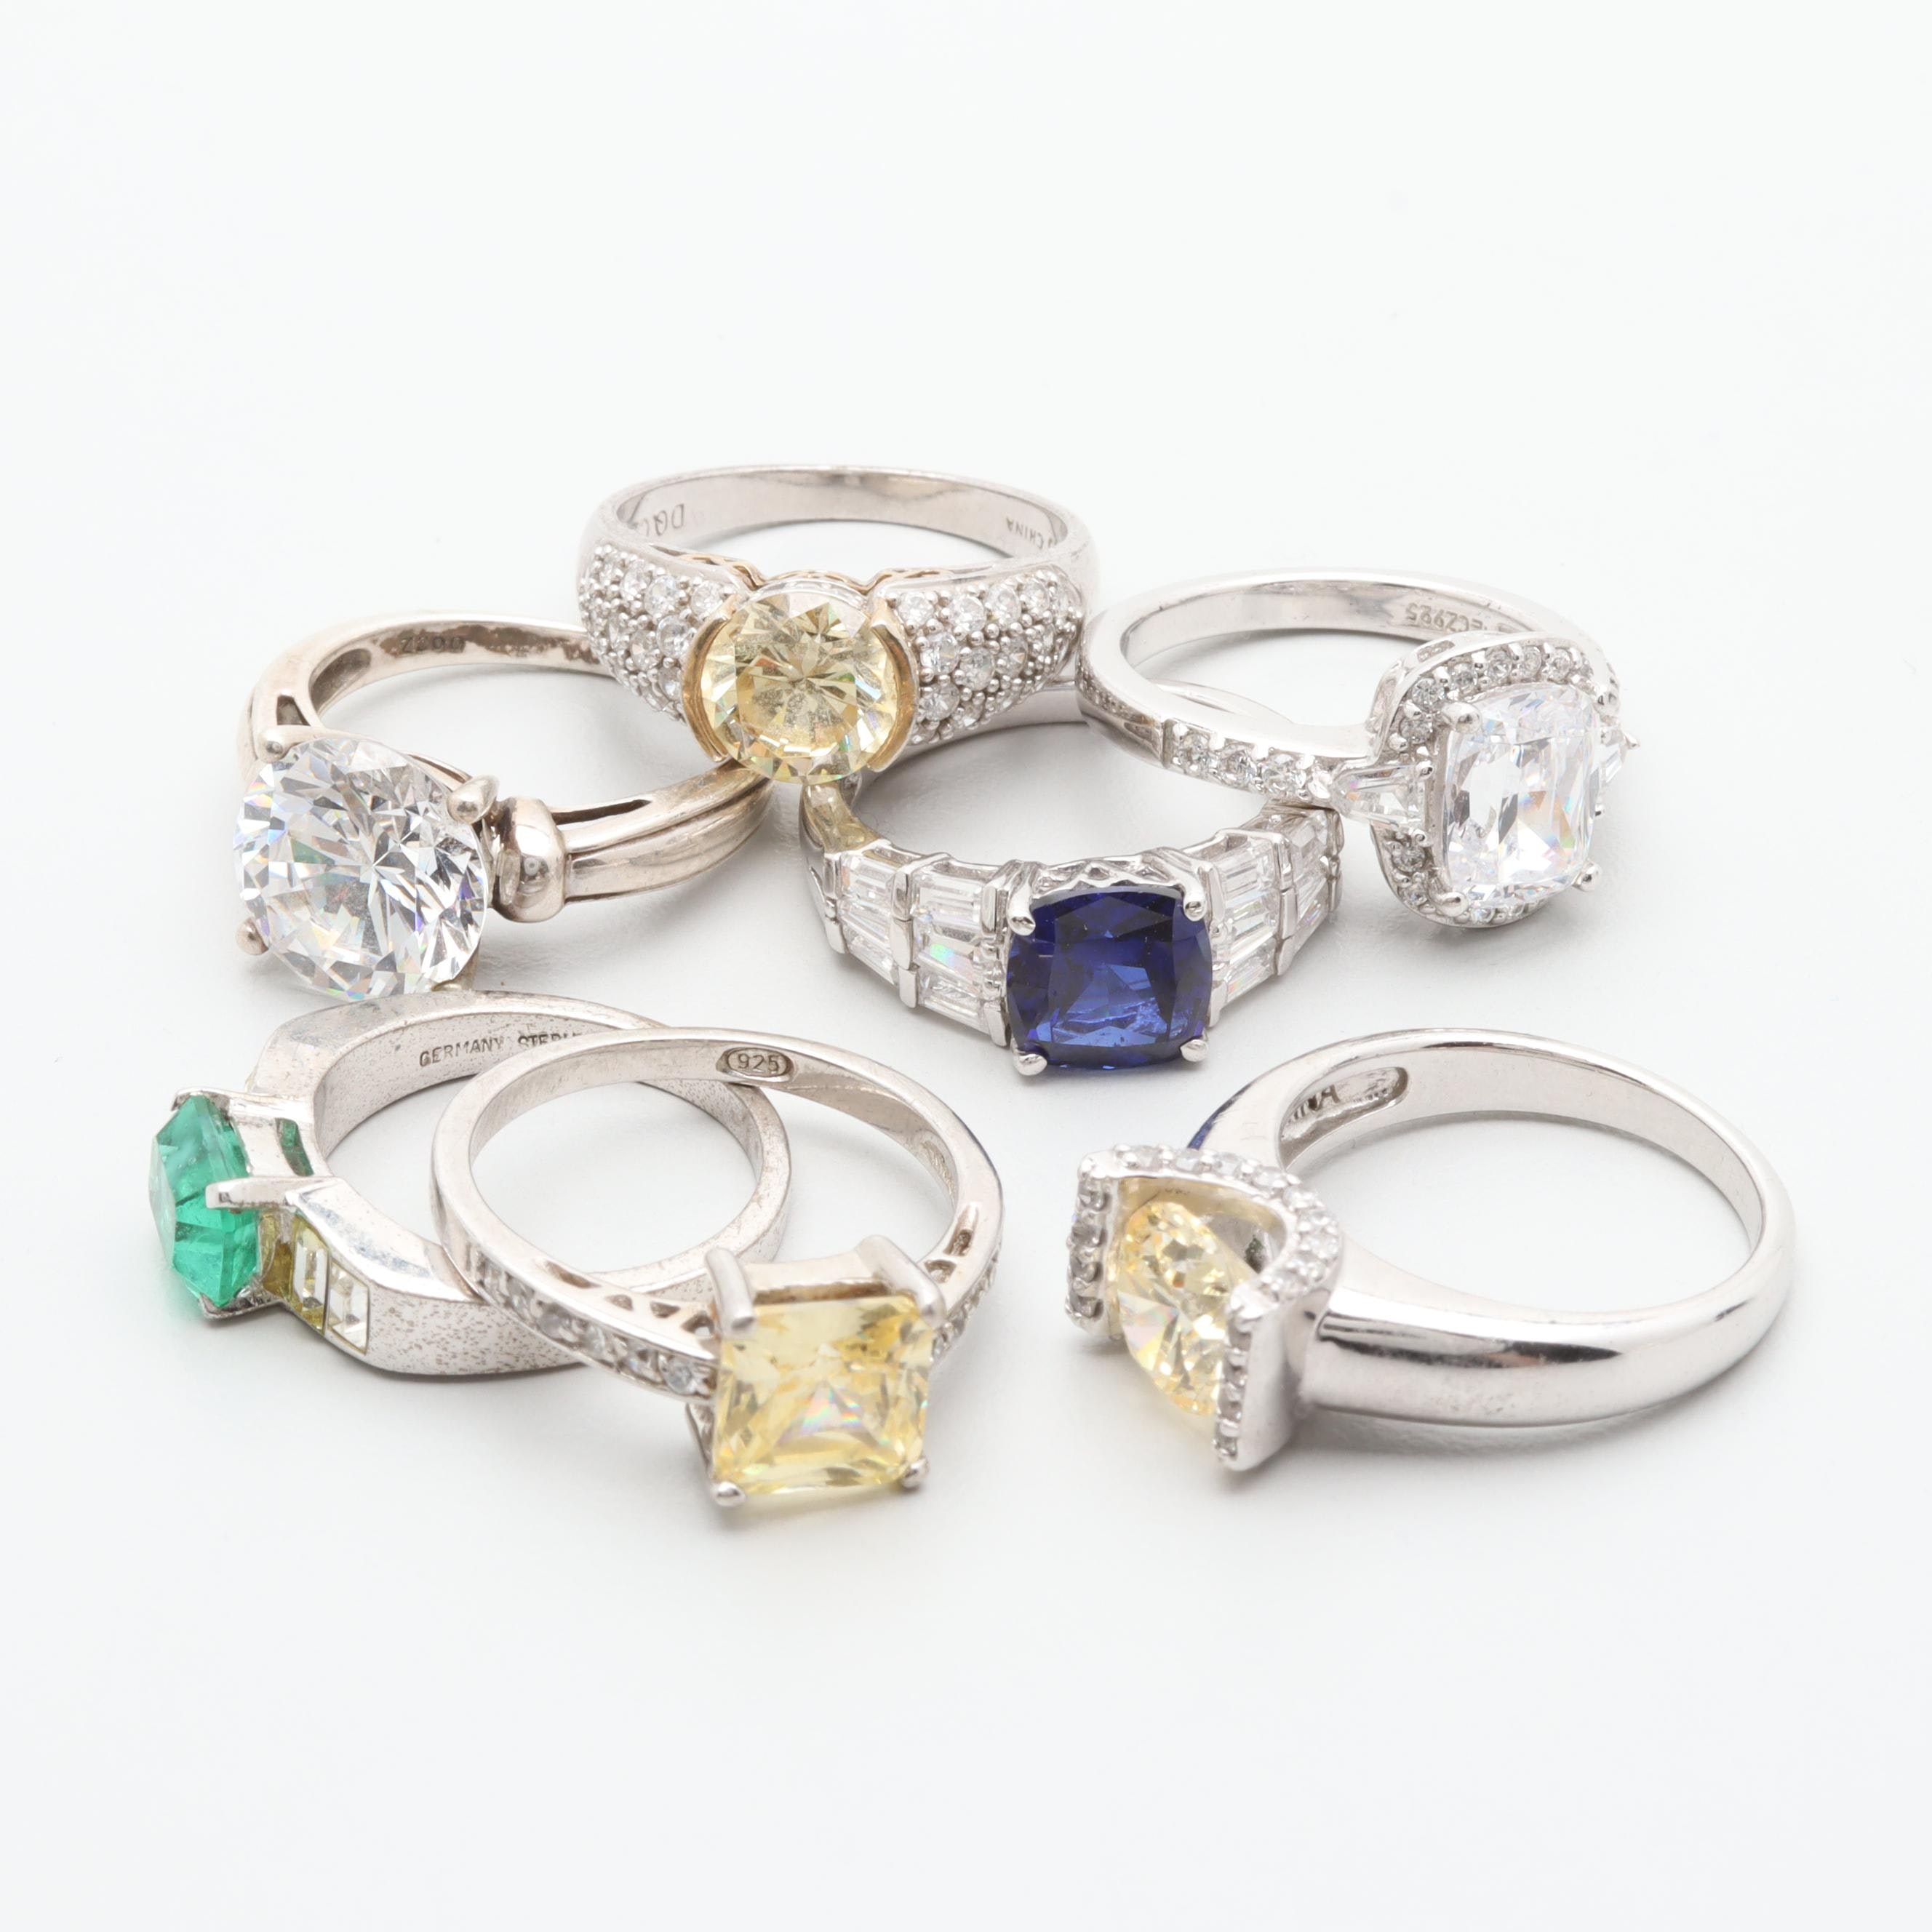 Sterling Silver Ring Assortment Including Cubic Zirconia and Synthetic Sapphire